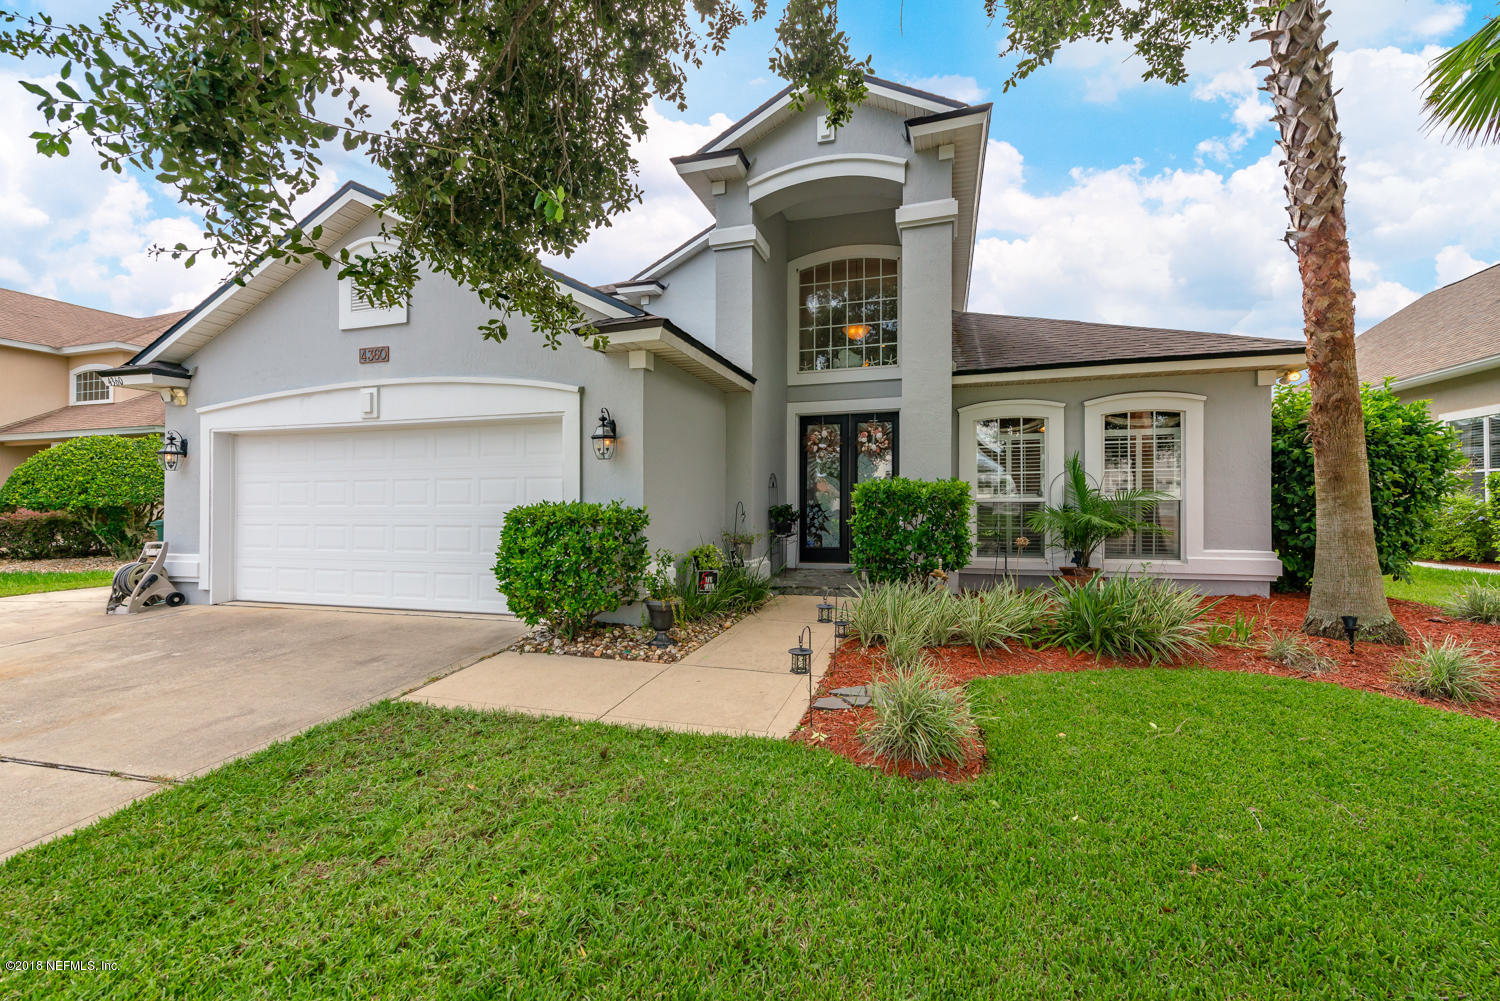 4360 TRADEWINDS, JACKSONVILLE, FLORIDA 32250, 4 Bedrooms Bedrooms, ,2 BathroomsBathrooms,Residential - single family,For sale,TRADEWINDS,955929